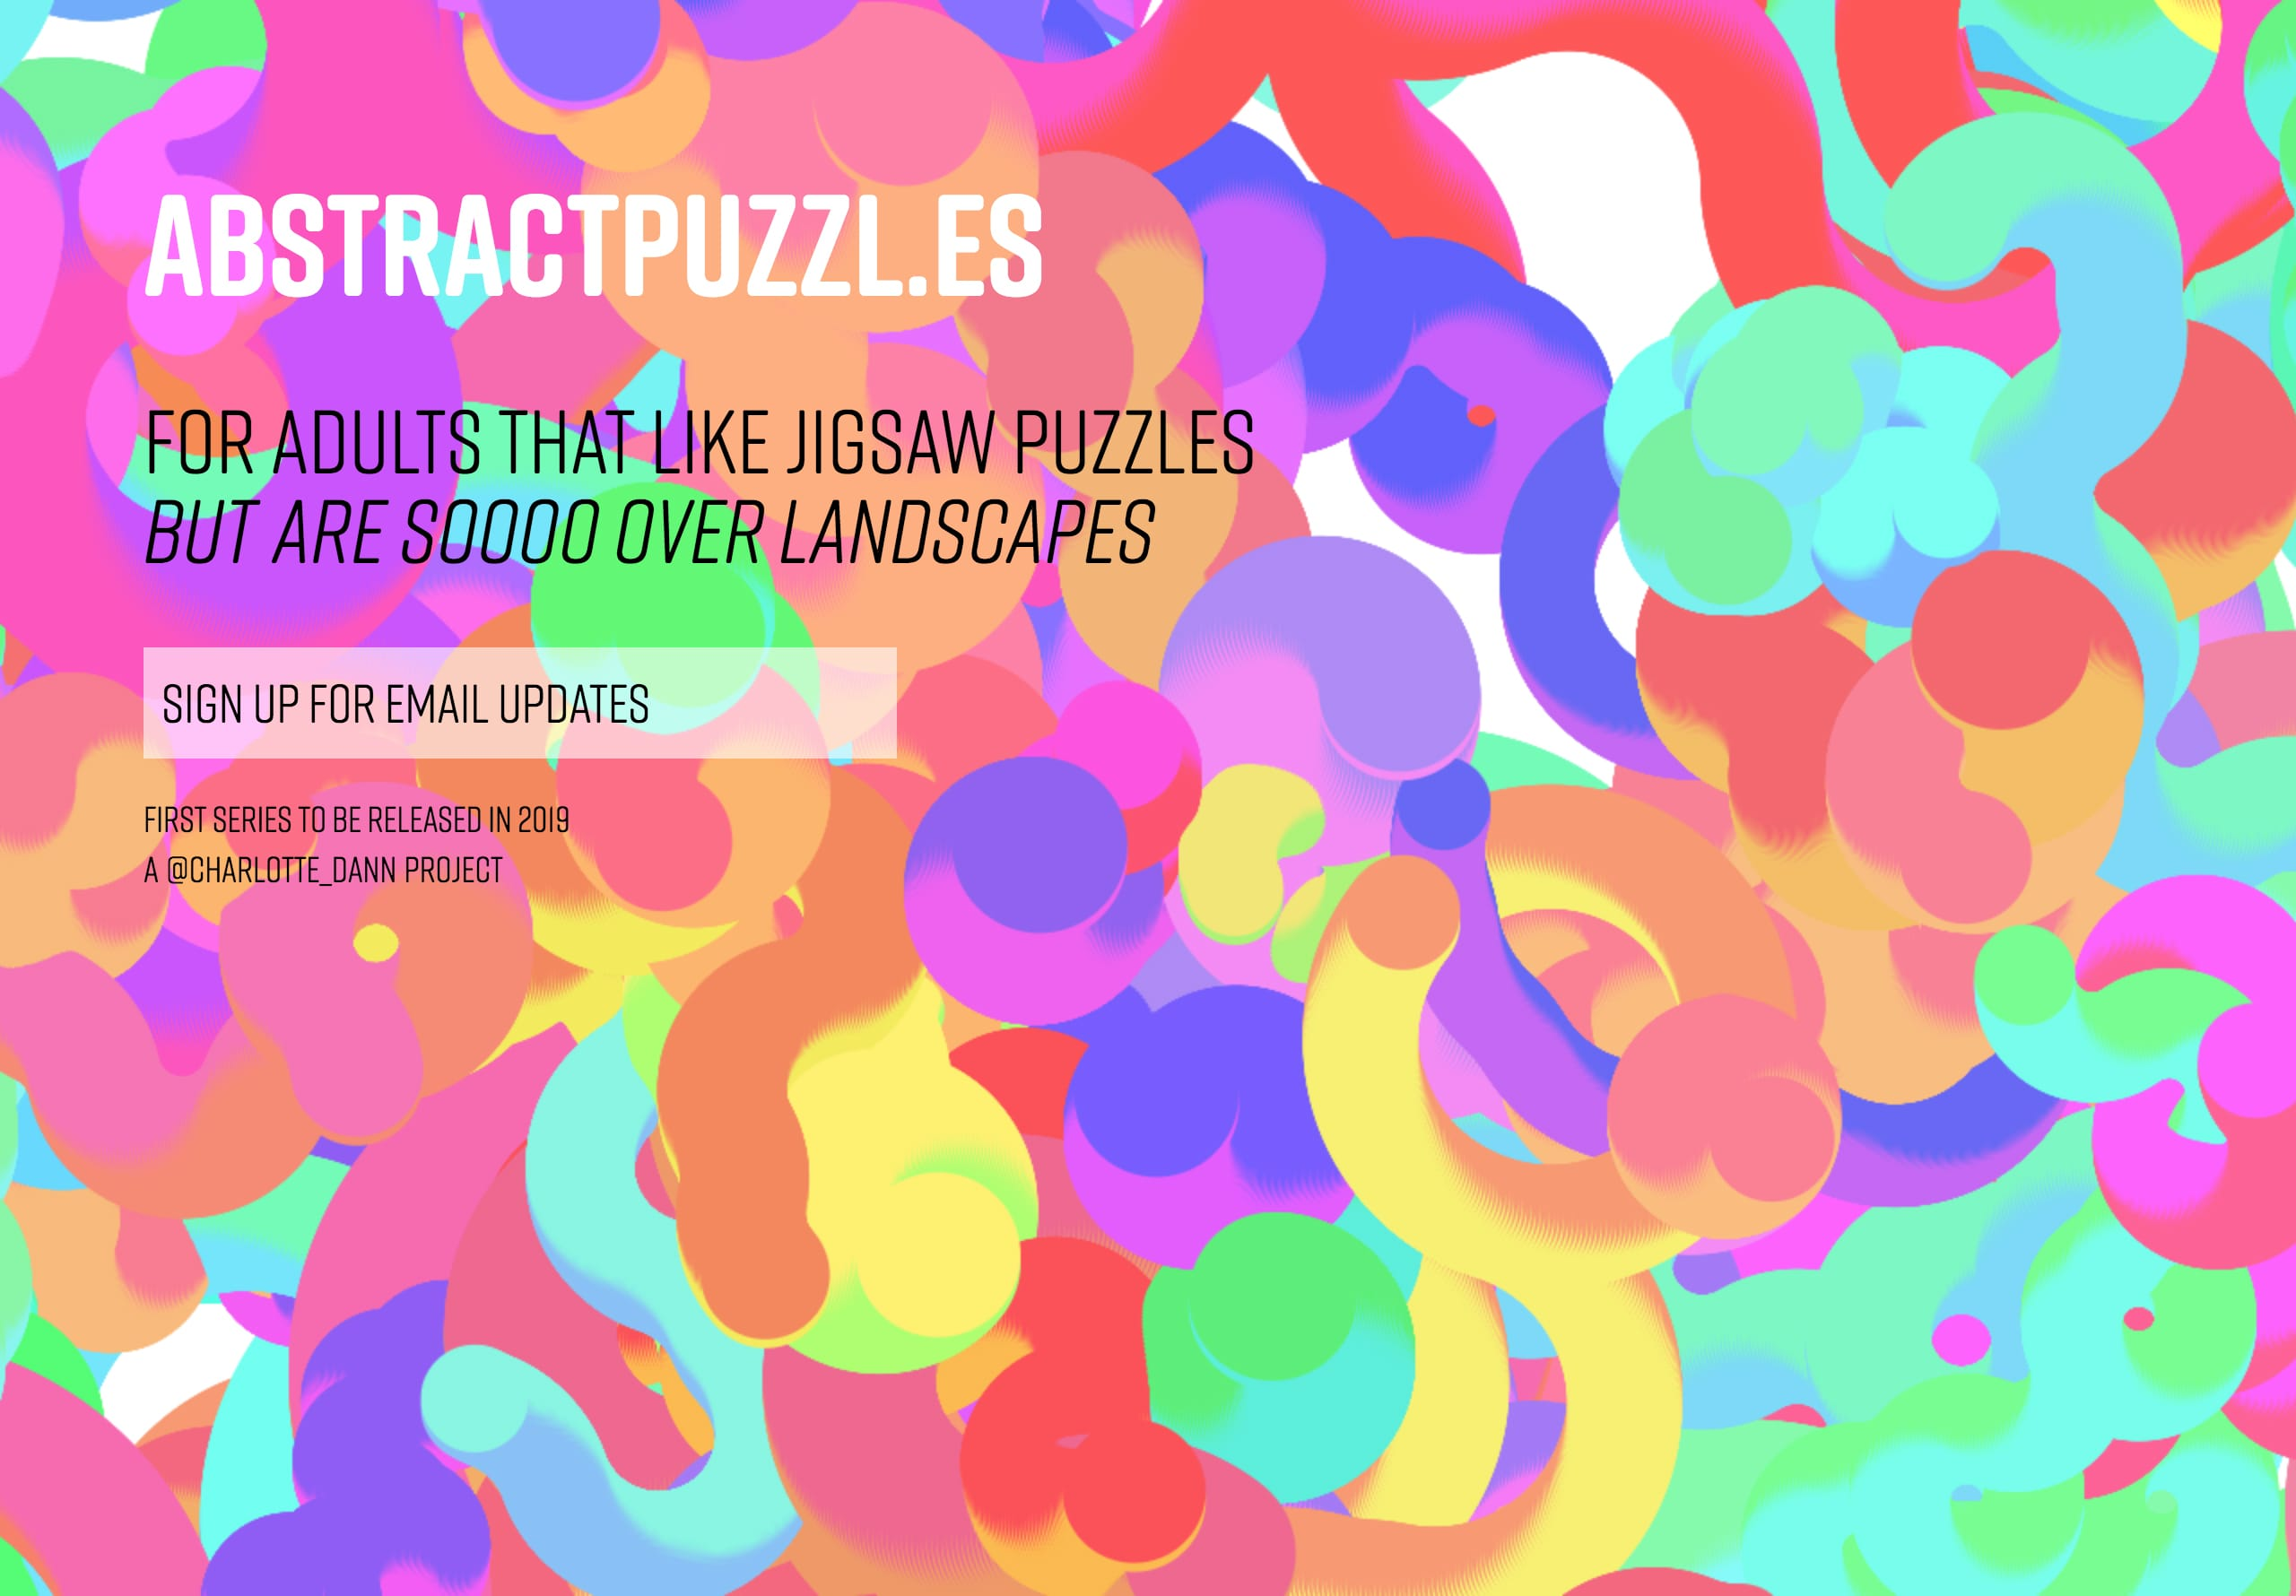 Abstract Puzzles Website Screenshot